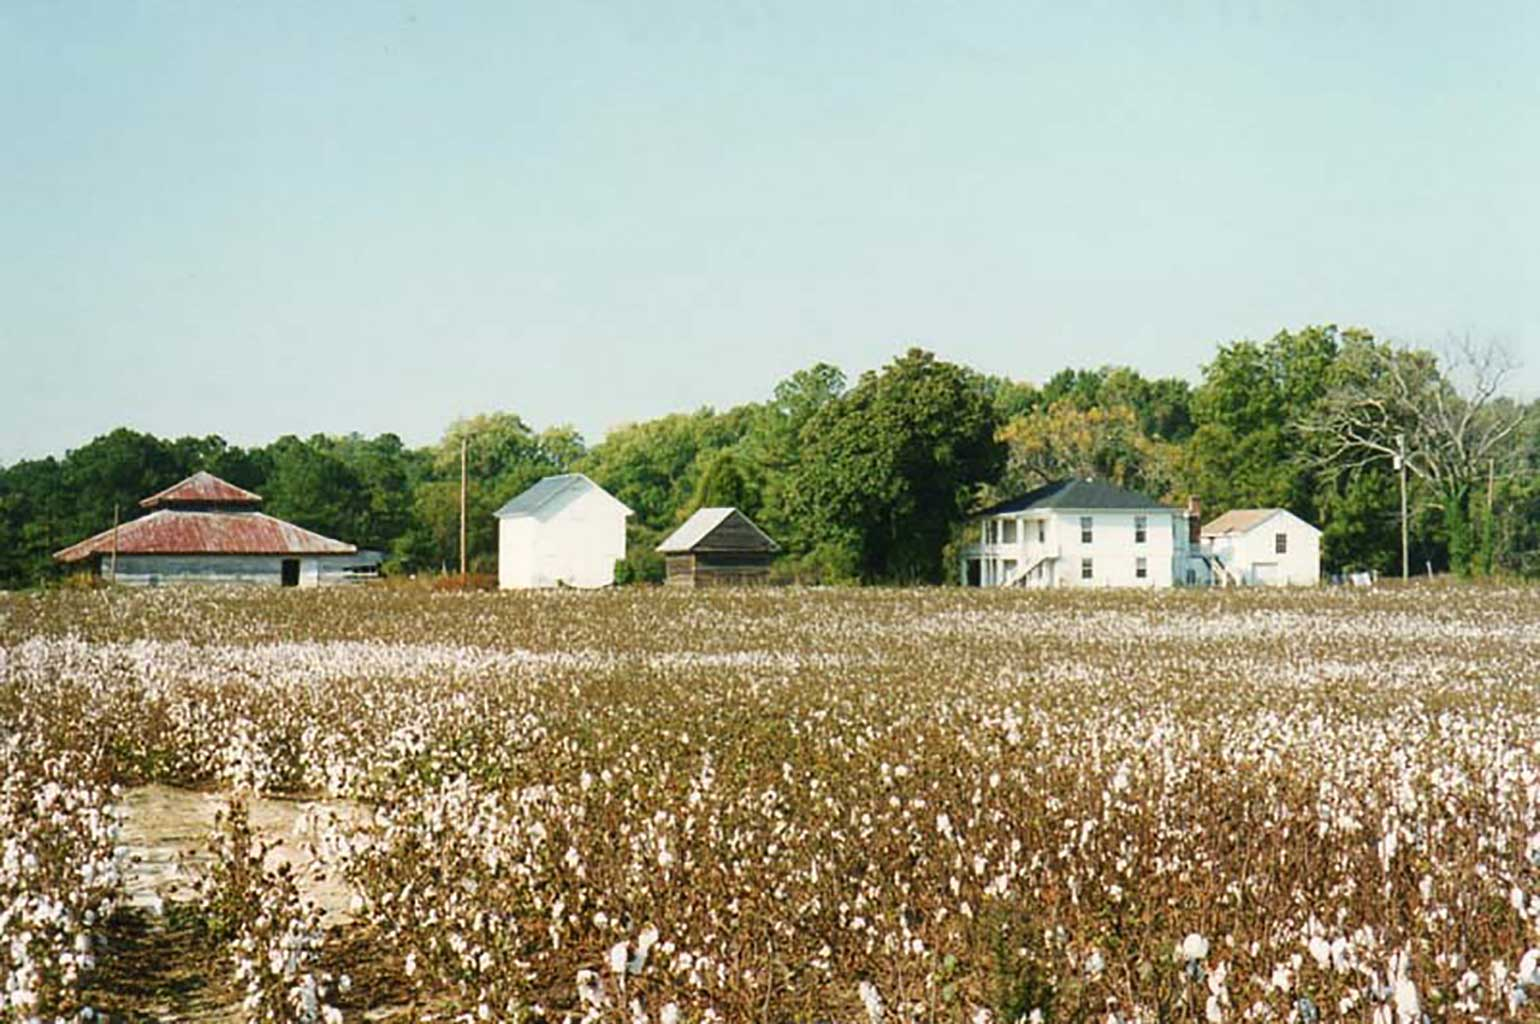 cotton-field-kirk-apartments-out-building-1995-img300